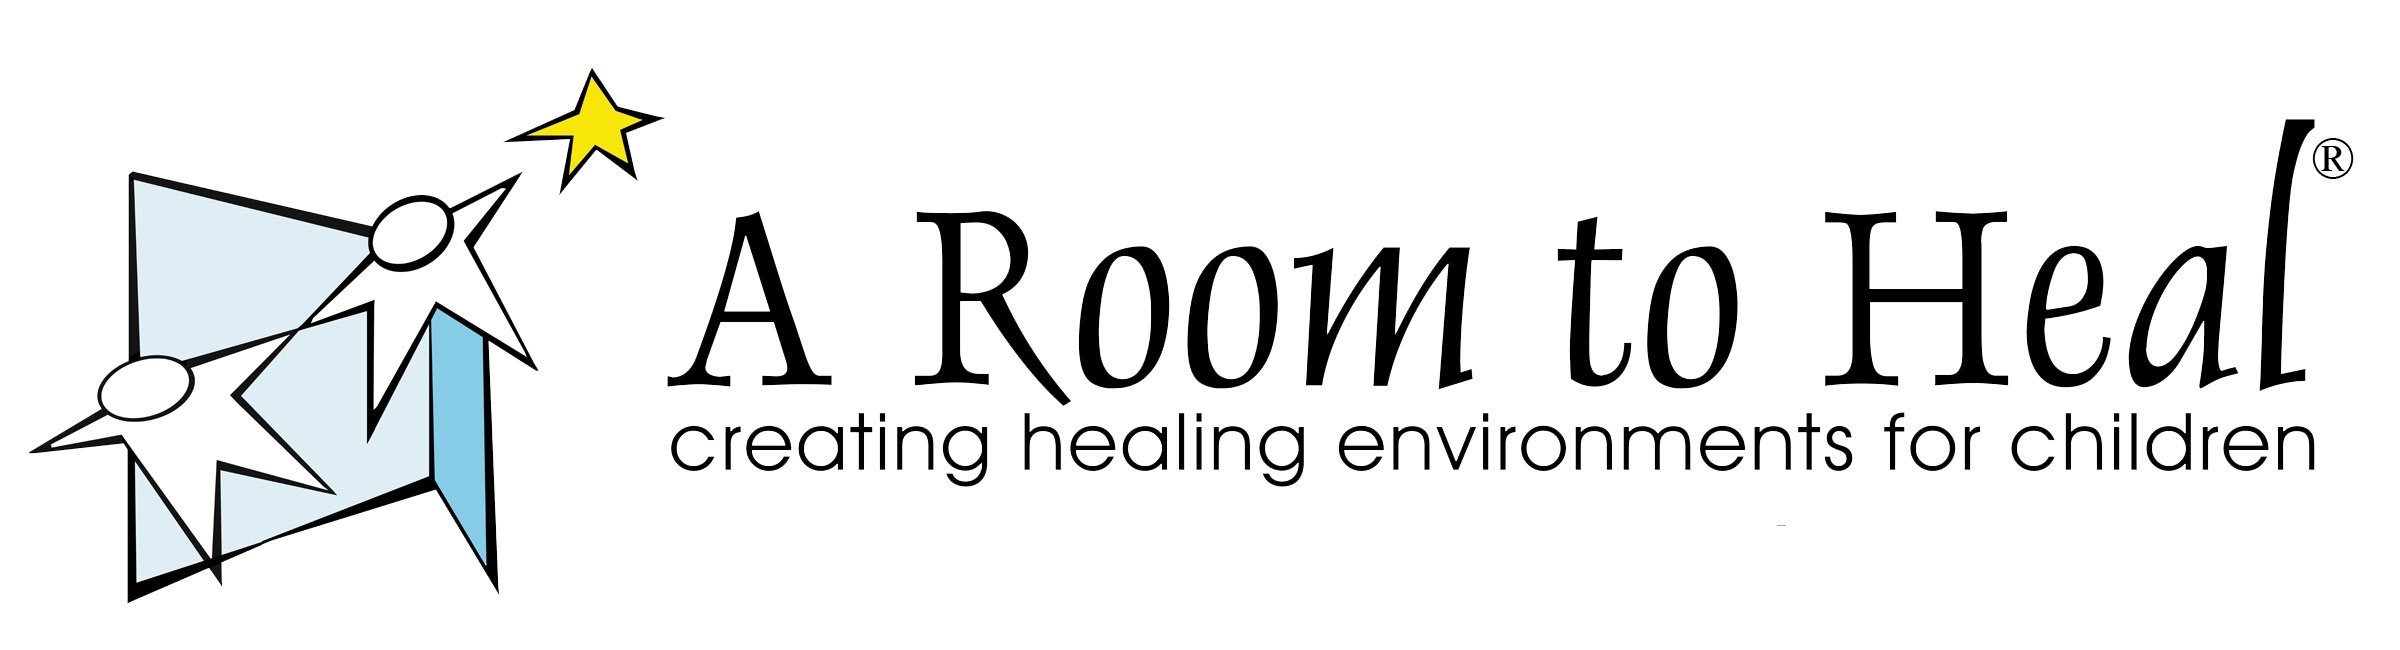 A Room to Heal